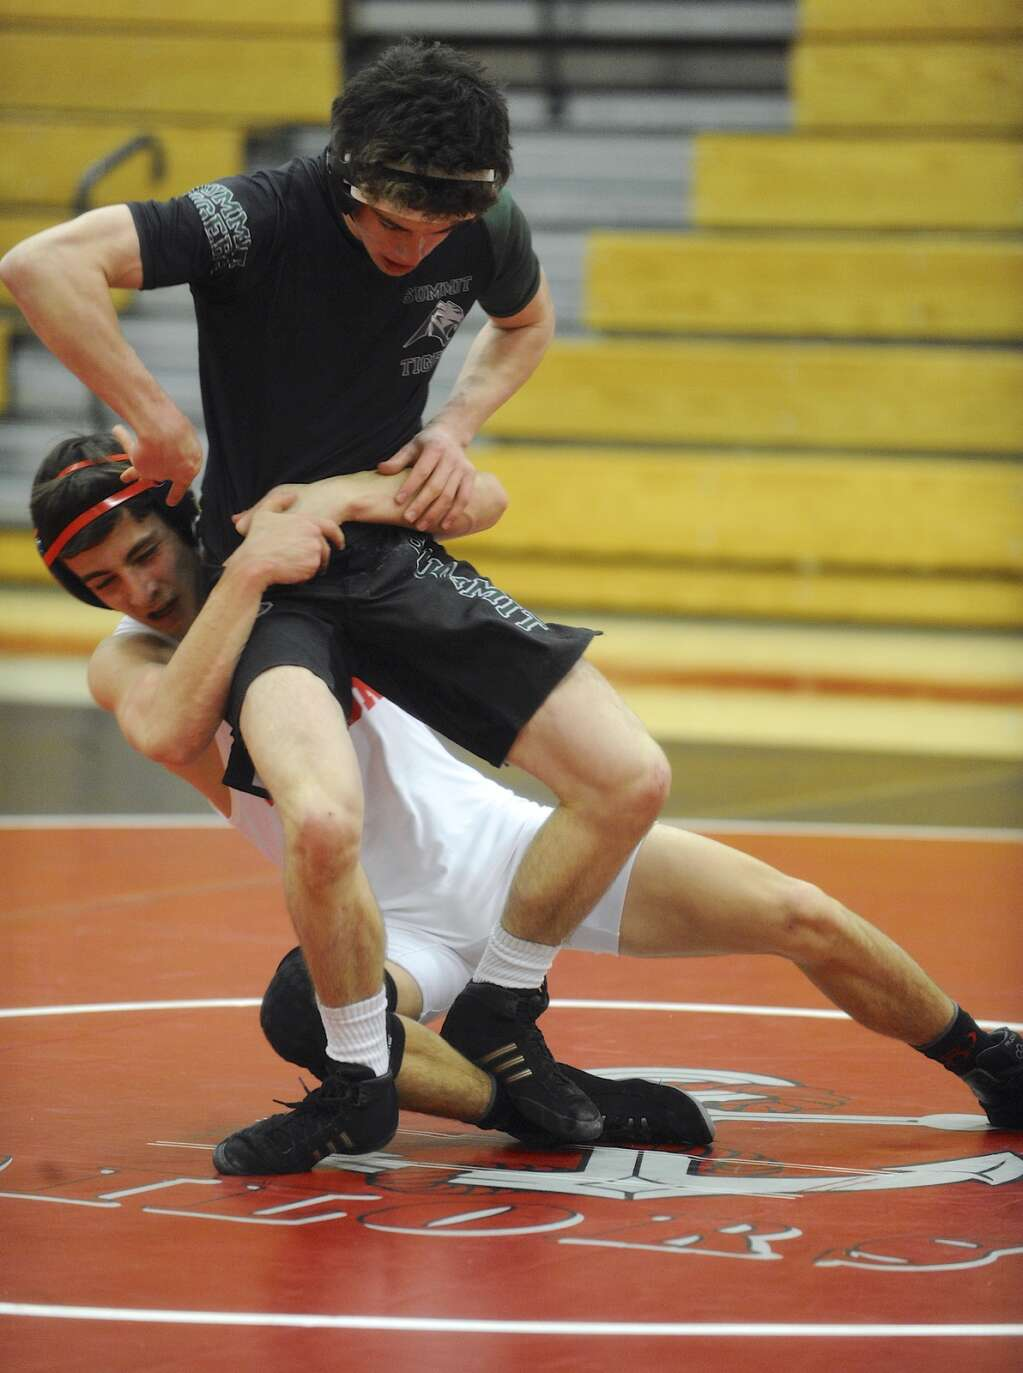 Summit's Aidan Collins dropped a 16-13 decision to Leonardo Meraz in a dual against Glenwood Springs in Steamboat Springs on Thursday, Feb. 4. | Photo by Shelby Reardon / Steamboat Pilot & Today